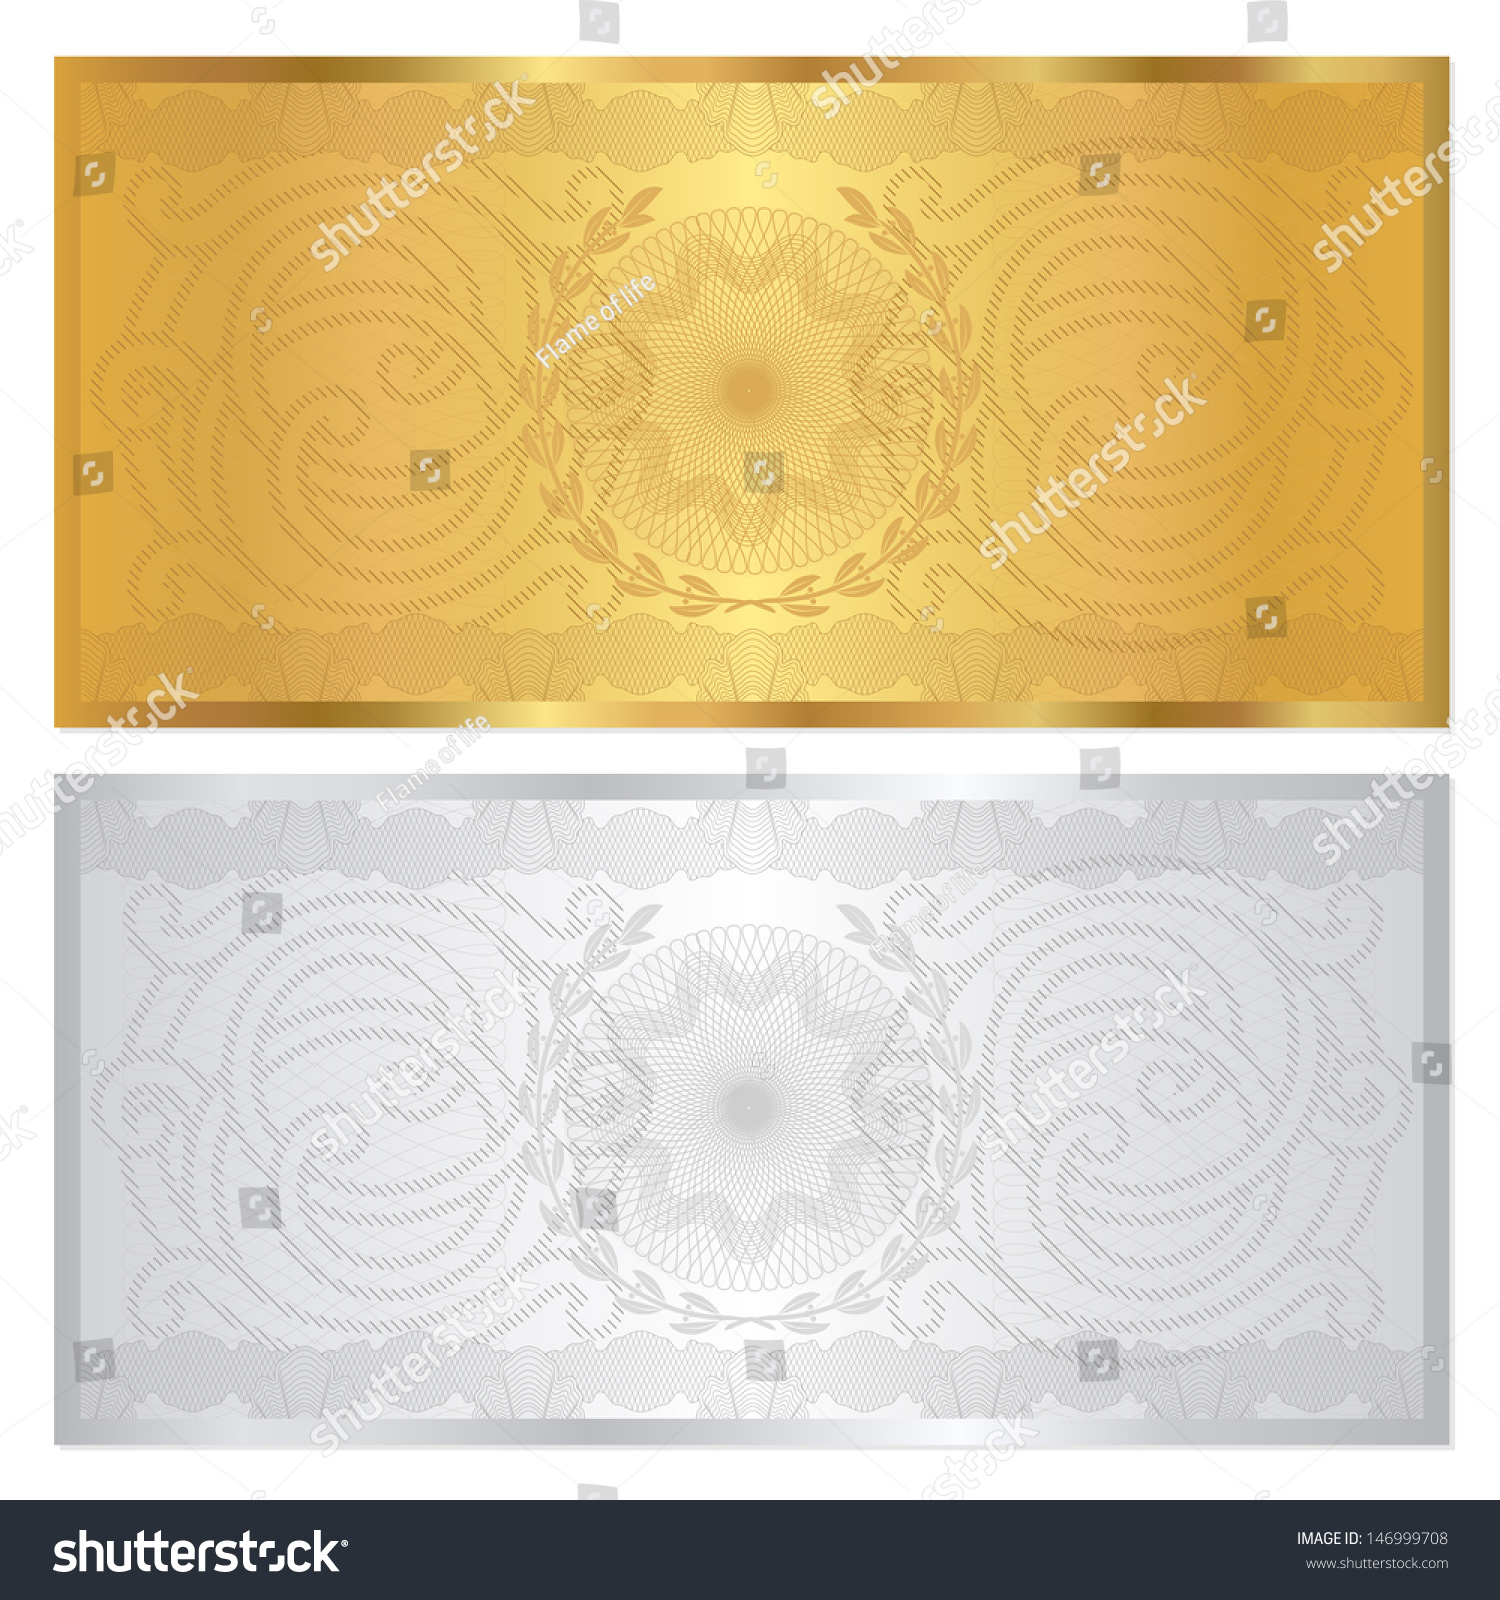 Voucher Template Guilloche Pattern Watermark Border – Check Voucher Template